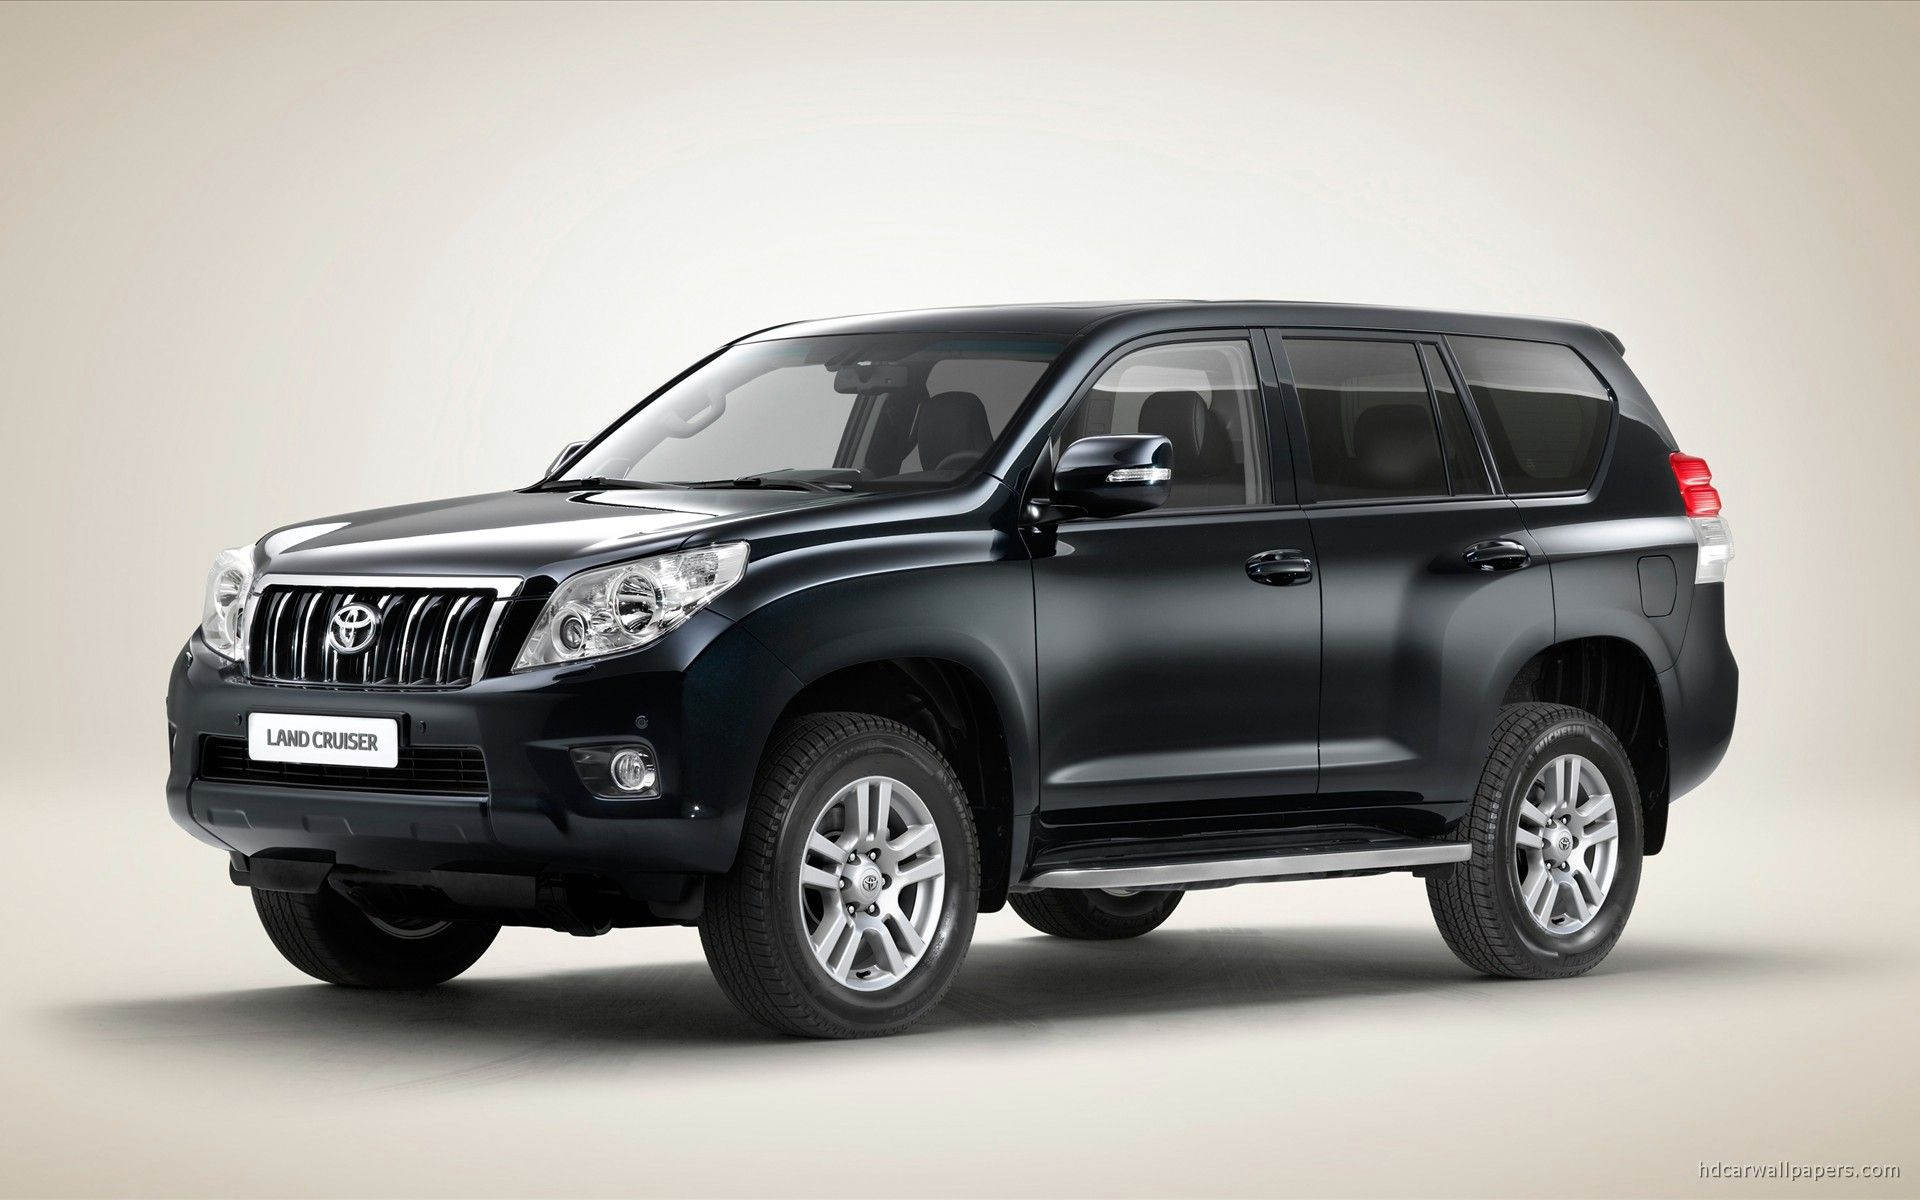 Toyota automobile company believes in launching a car model and going with it over changes and variations for years toyota land cruiser is a classic